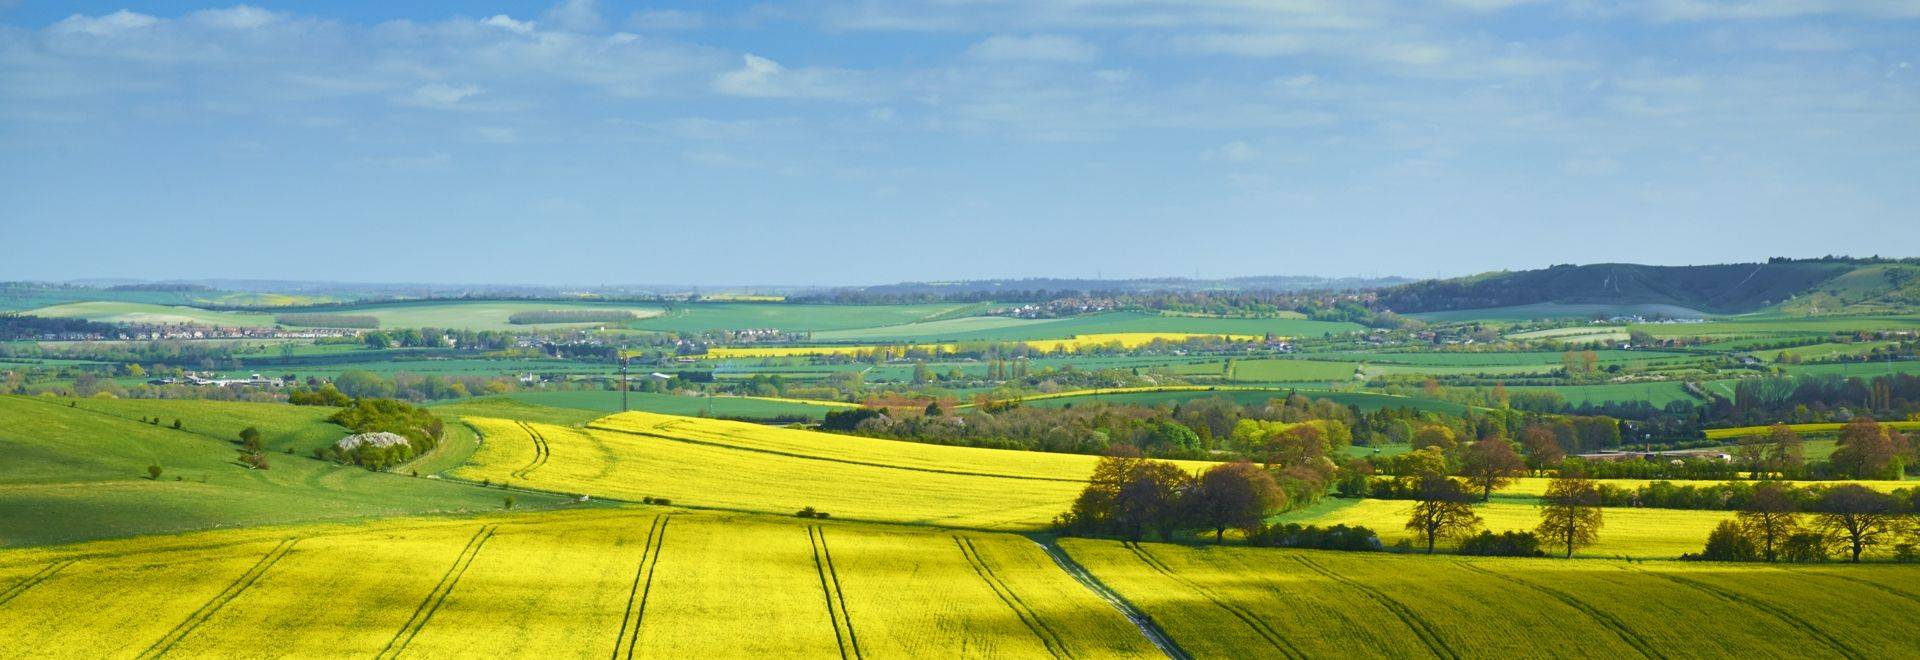 A path/farm track crosses a vast field of bright yellow rapeseed/Canola plant flowers in the Chiltern Hills, Buckinghamshire.